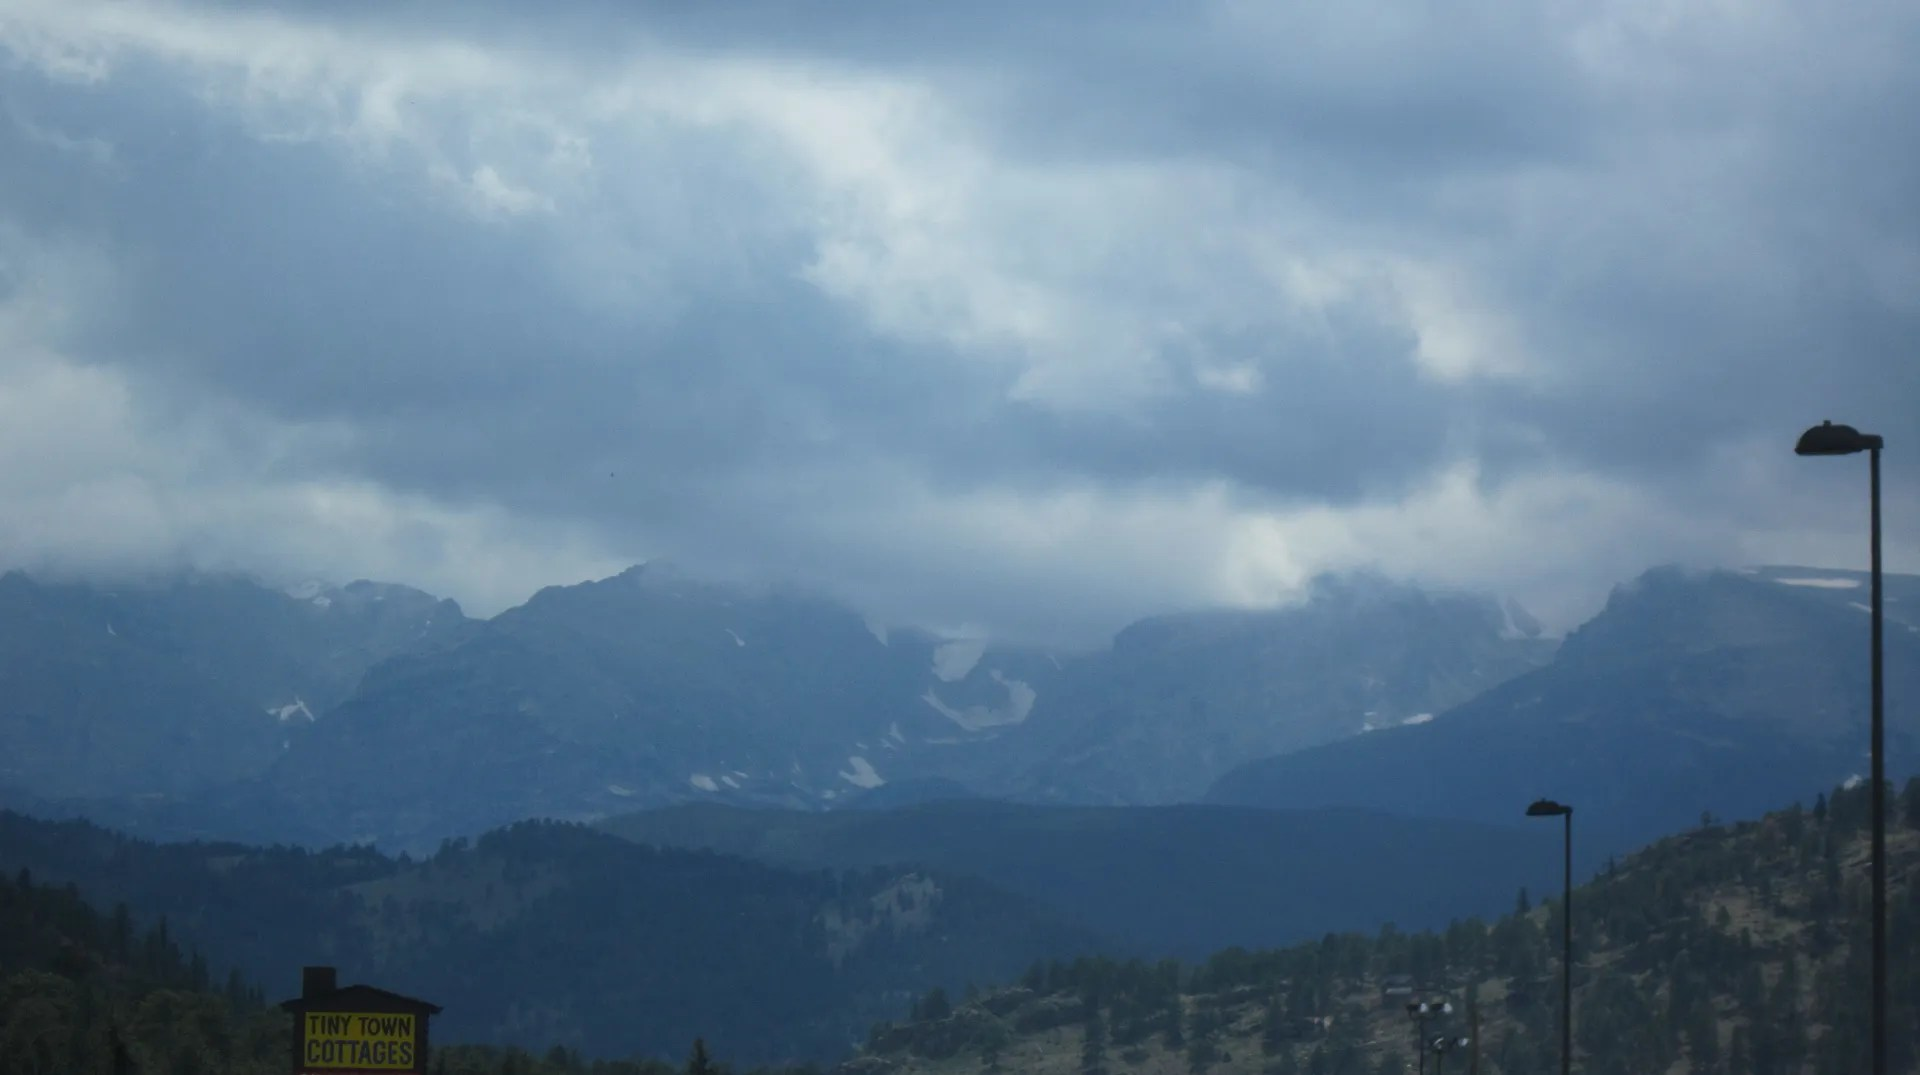 Rocky Mountains by Estes Park